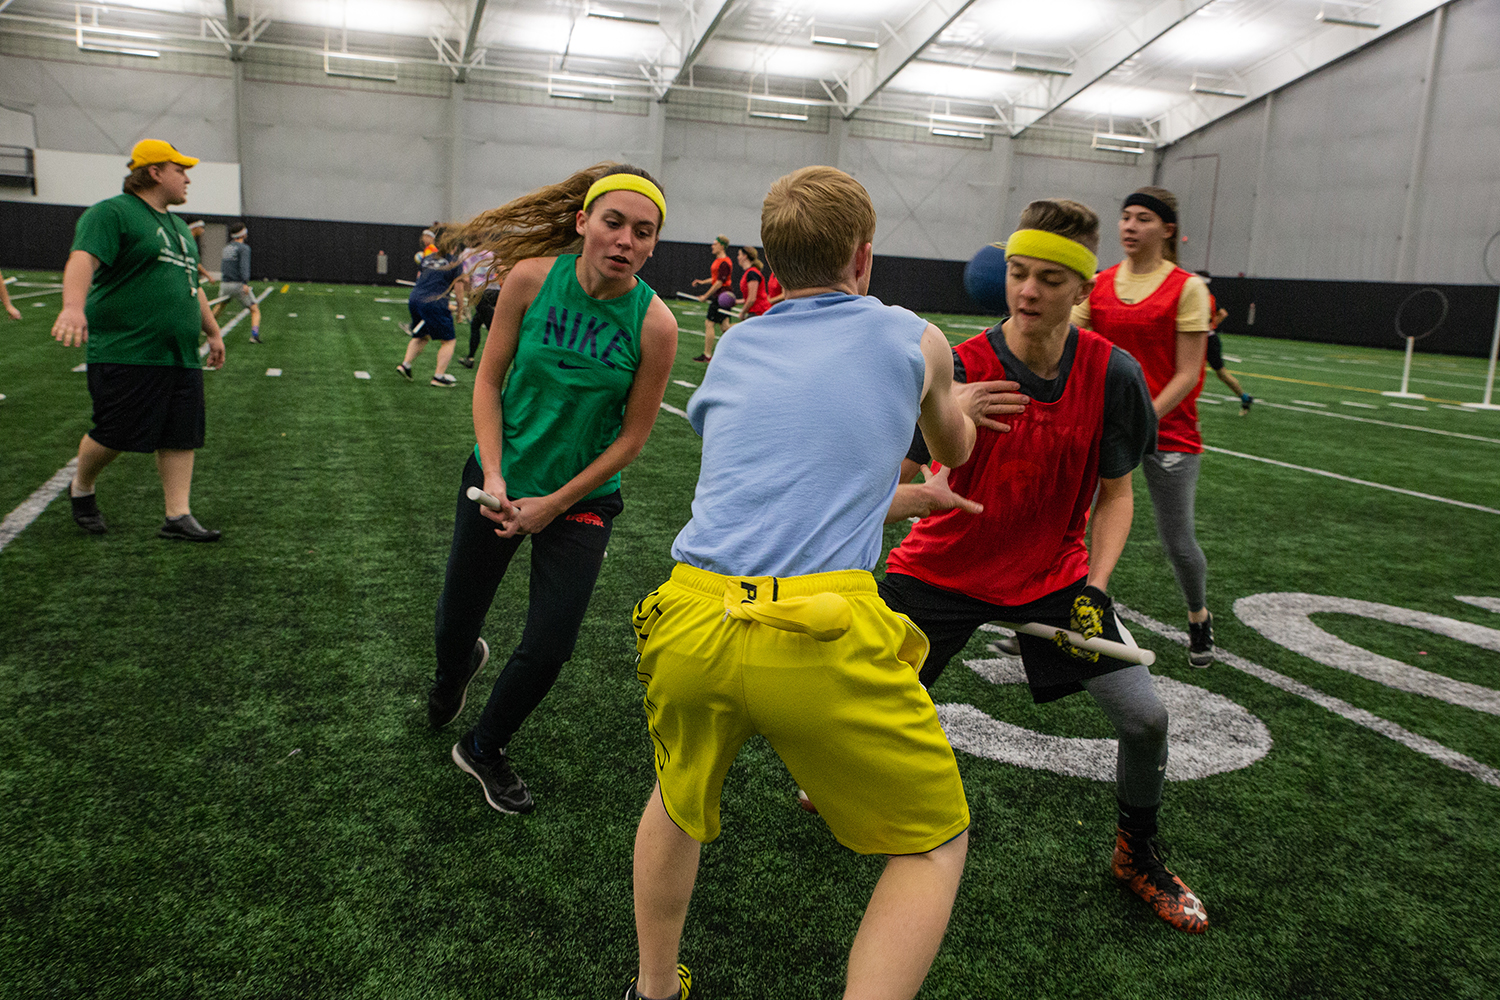 University of Iowa Club Quidditch players chase the golden snitch during an intersquad scrimmage at the Hawkeye Tennis and Recreation Complex on Wednesday, November 14, 2018.